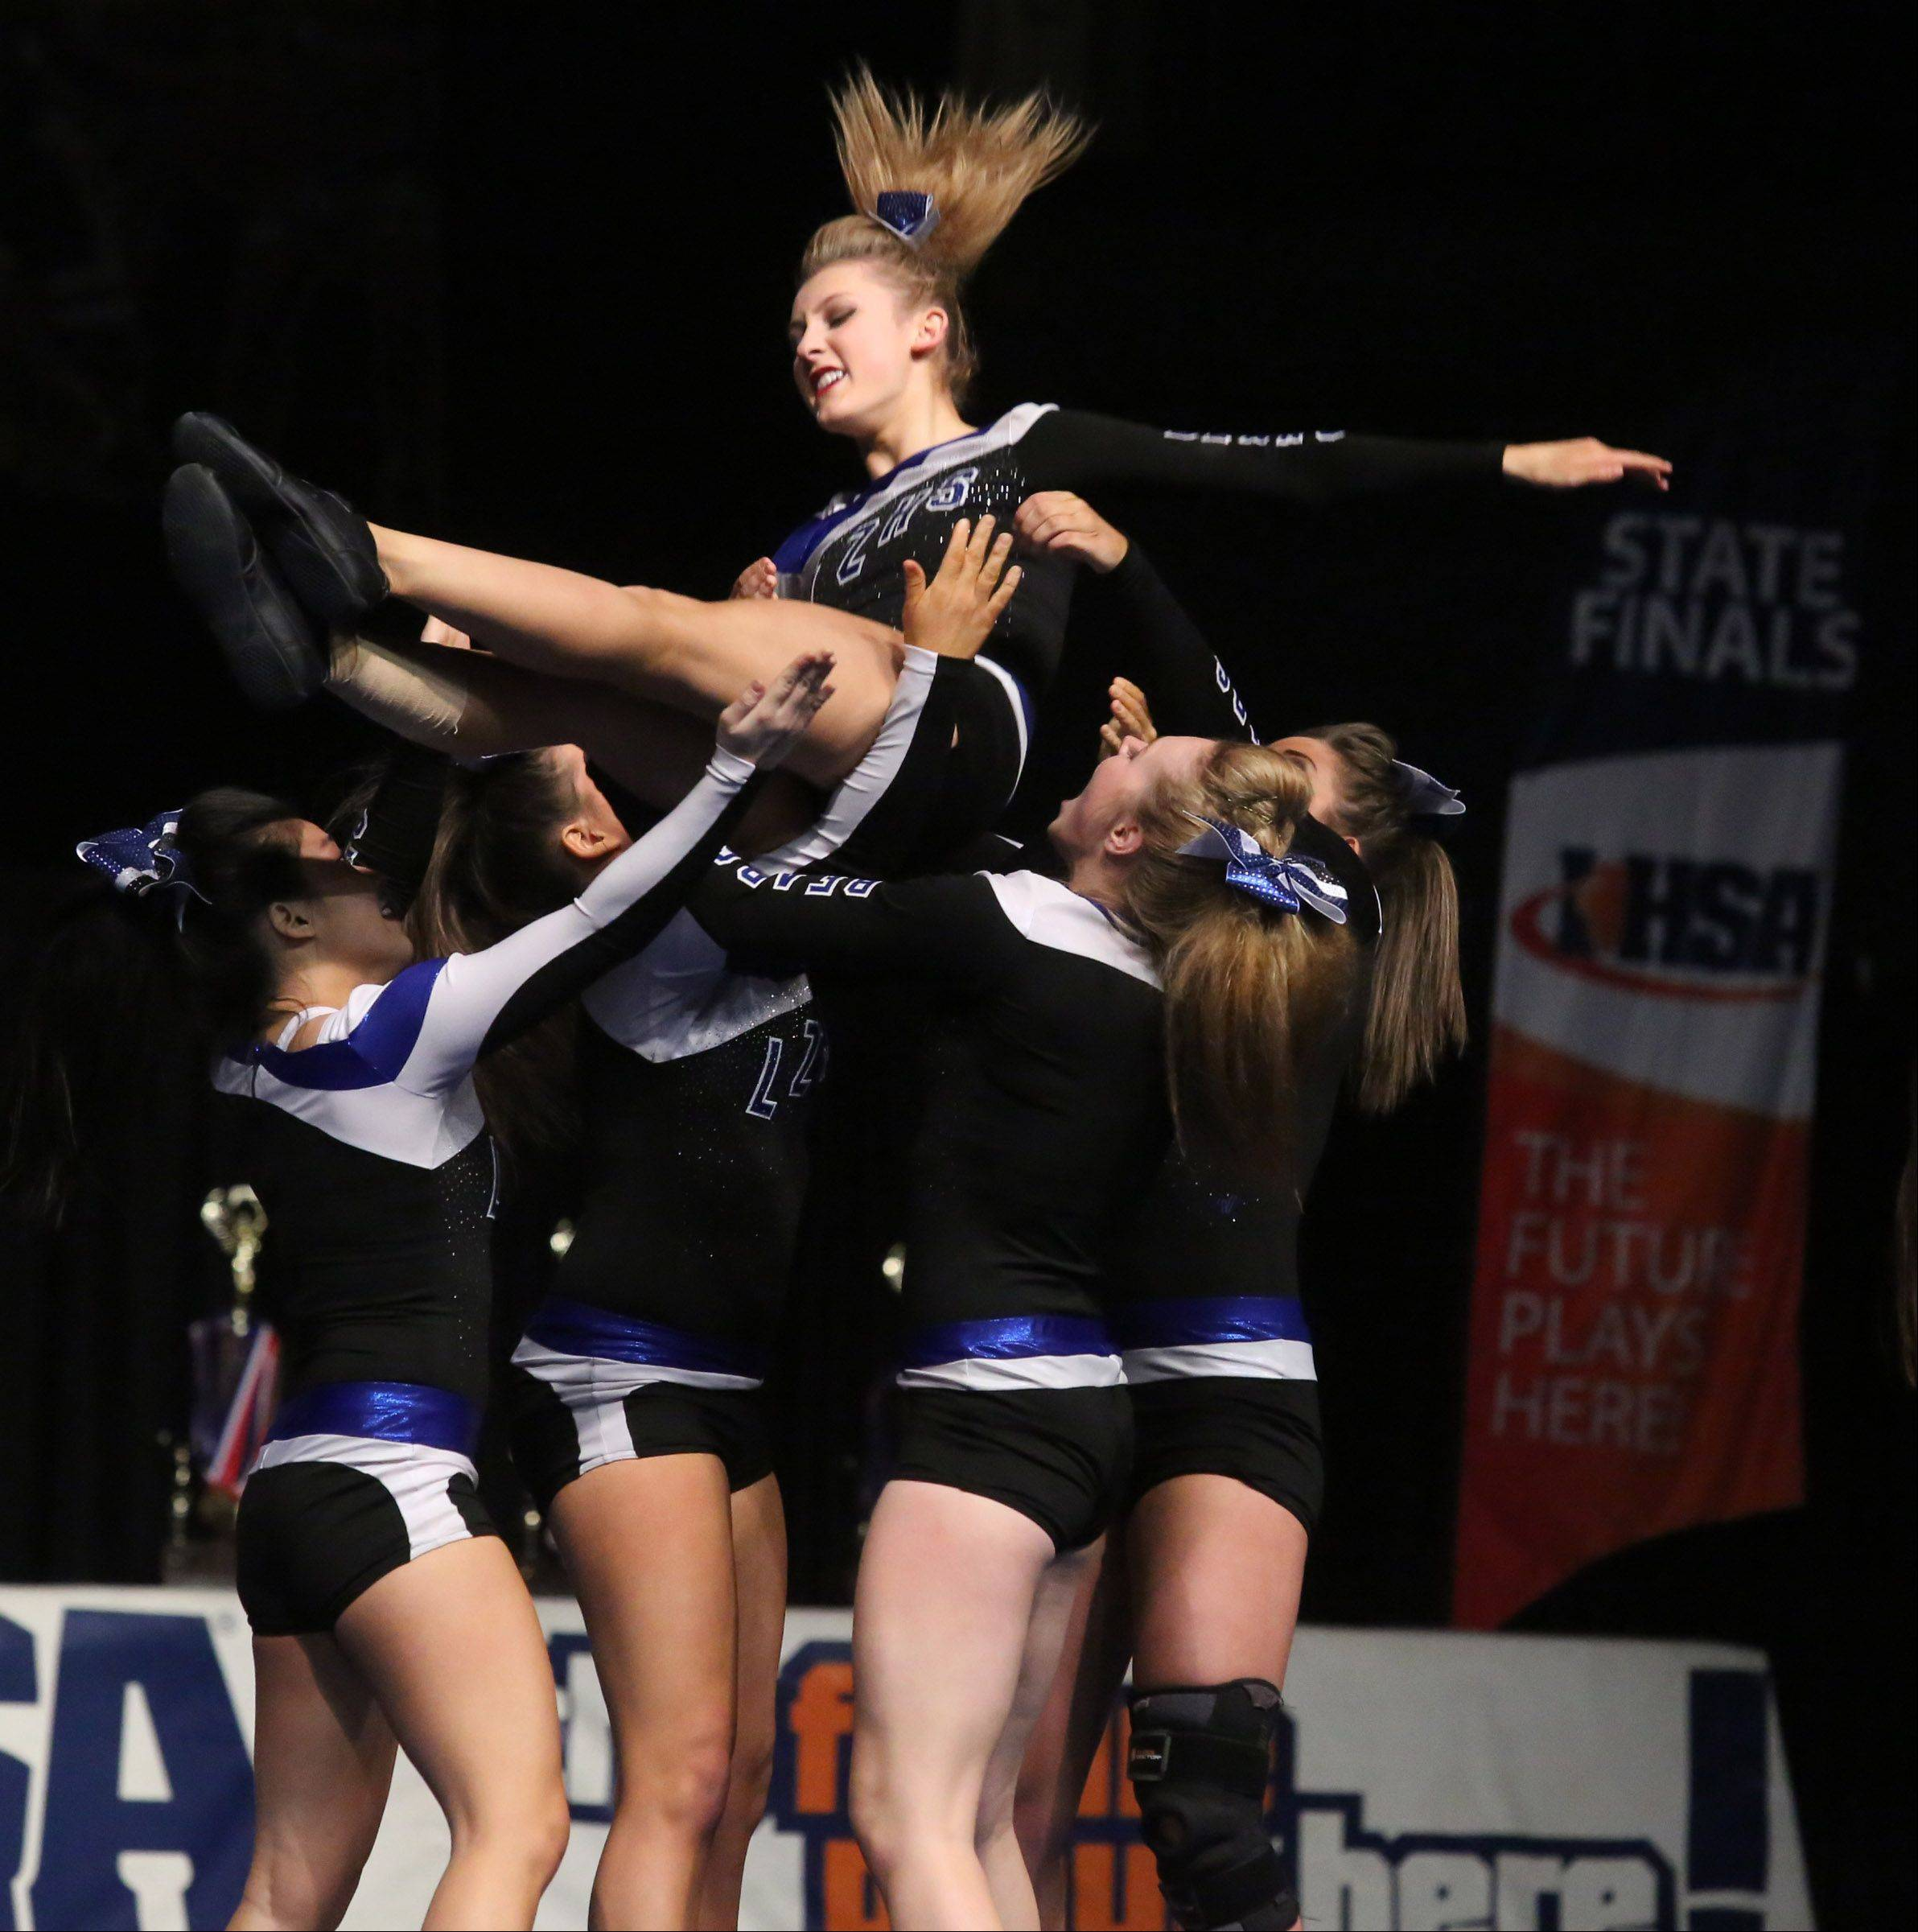 Lake Zurich High School's cheer team performs in the large team category.